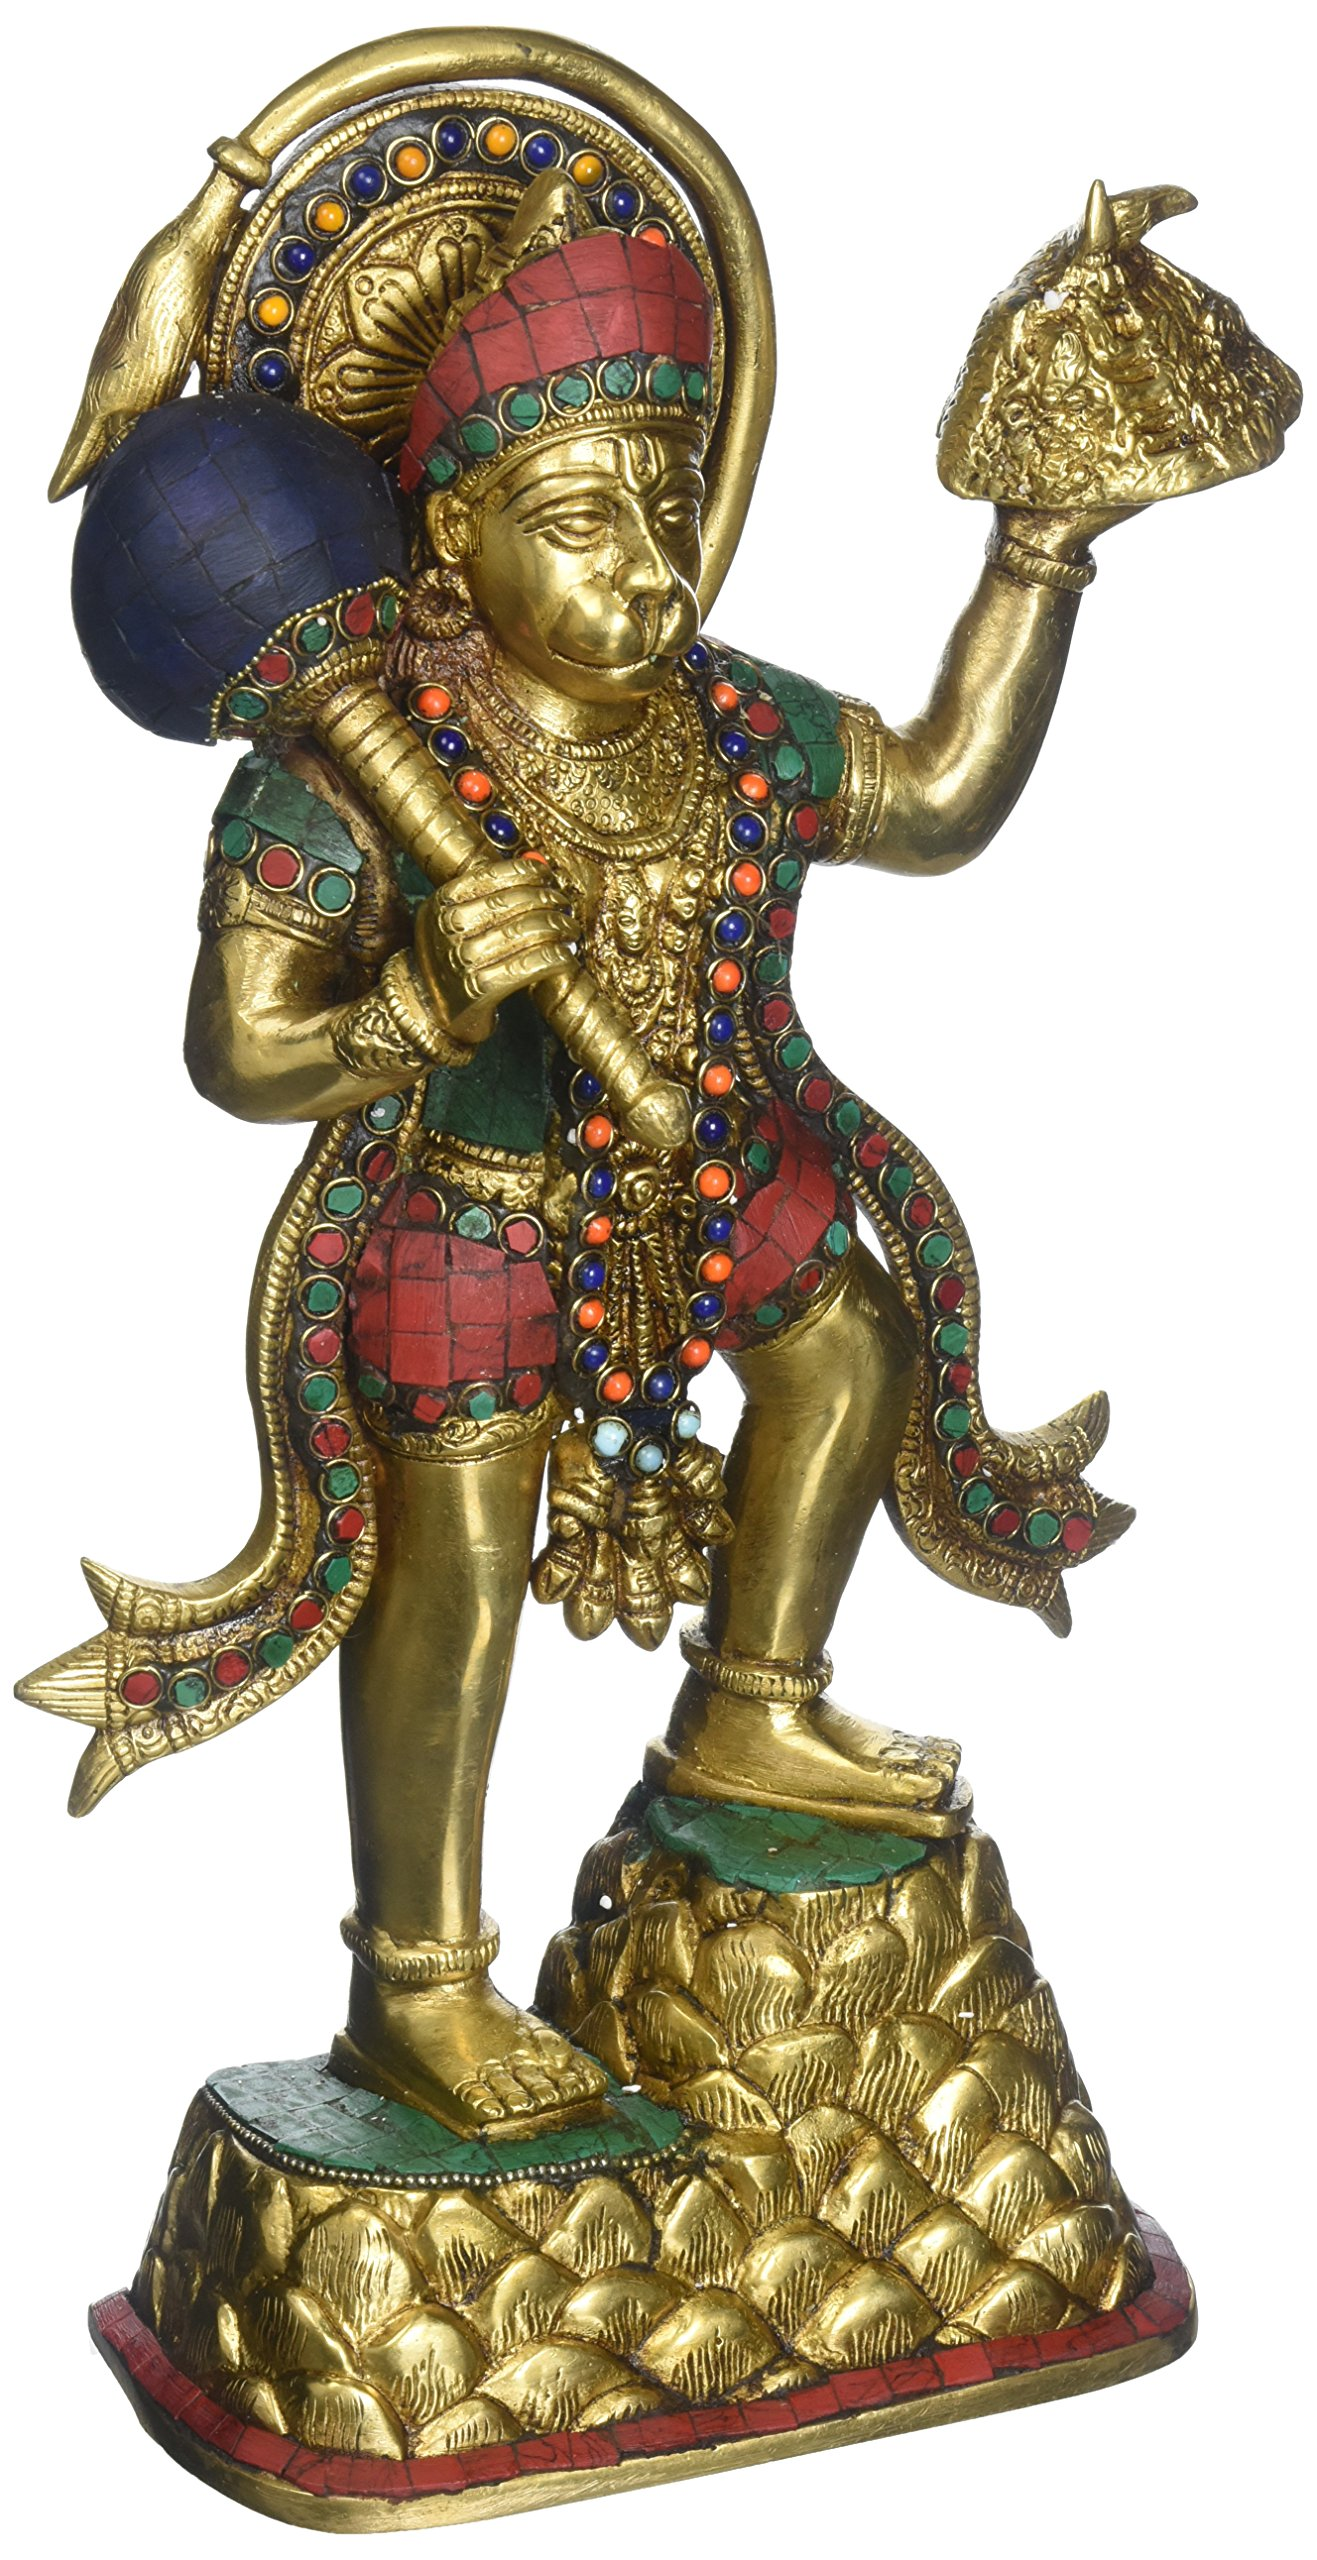 Aone India 15'' Large Hanuman Brass Statue Hindu God of Strength sculptures-temple offering idol sculptures + Cash Envelope (Pack Of 10)